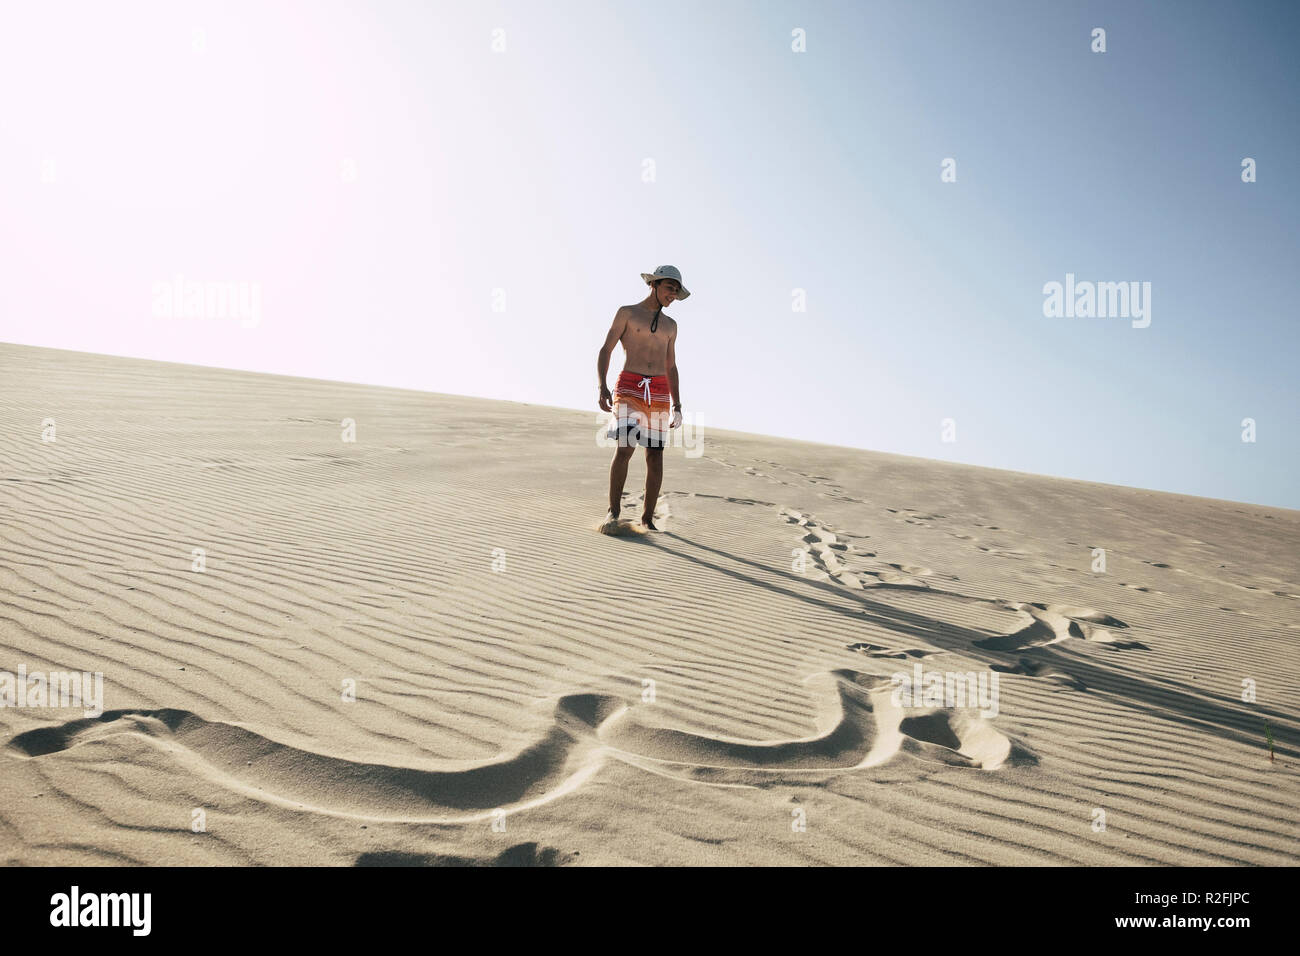 lost in happiness in the middle of the desert with sand dunes. young happy boy teenager enjoying vacation at the beach. clear blue sky in background. swimsuits and signs on the sand. summer day Stock Photo